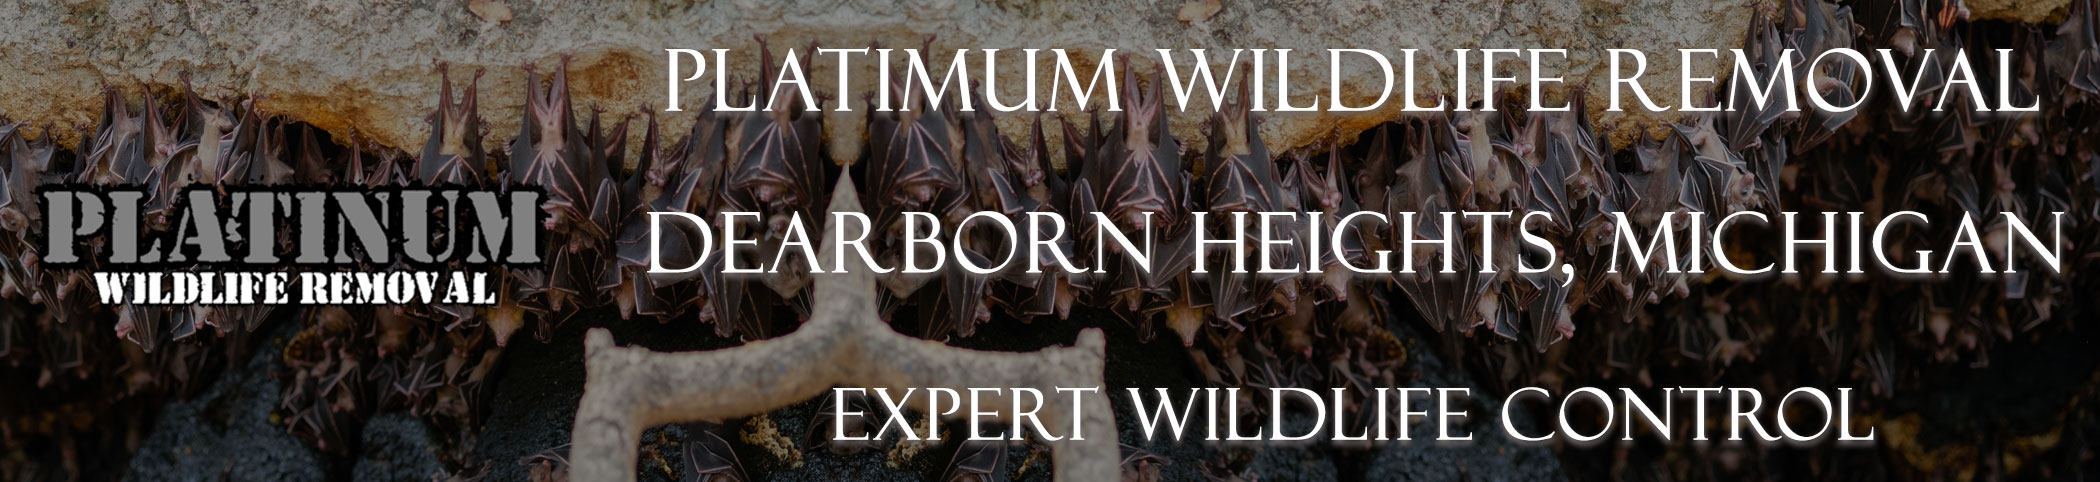 Dearborn-Heights-Platinum-Wildlife-Removal-michgan